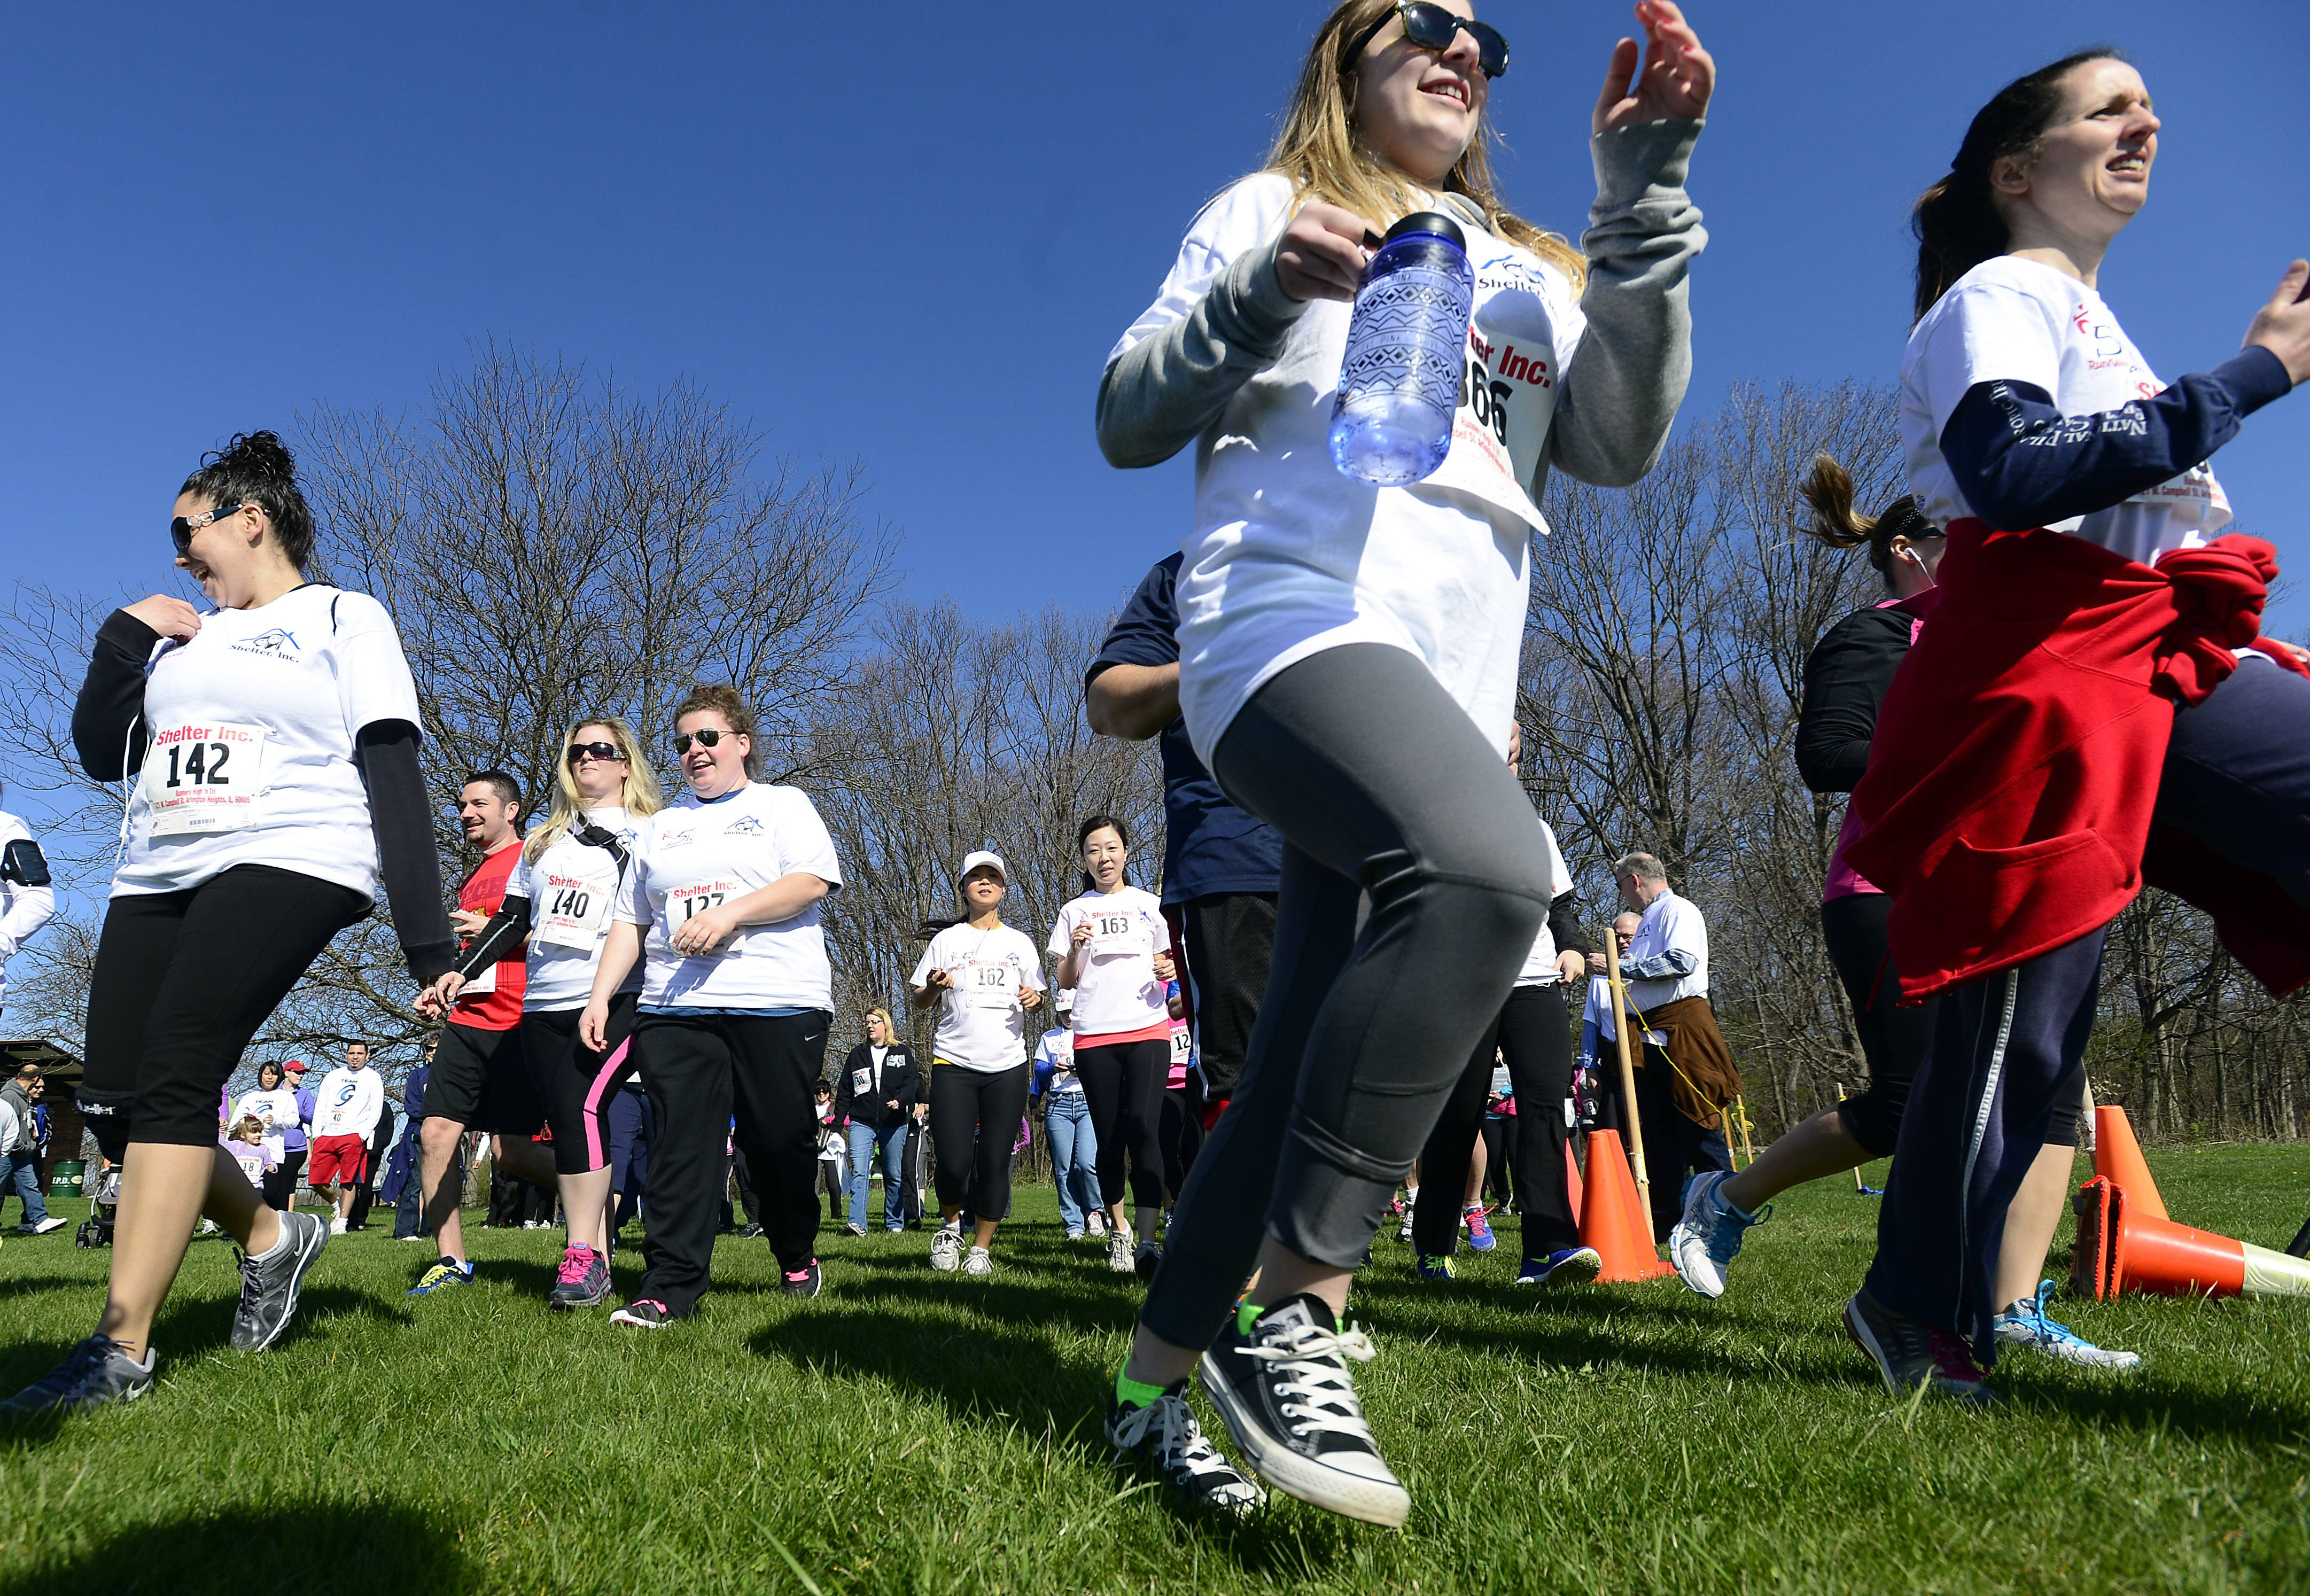 More than 200 runners and walkers under a beautiful blue sky Saturday kicked off the start of the Shelter 5K Run/Walk in Busse Woods. Some runners were with dogs, others with baby strollers as they showed support for the effort to help abused children.